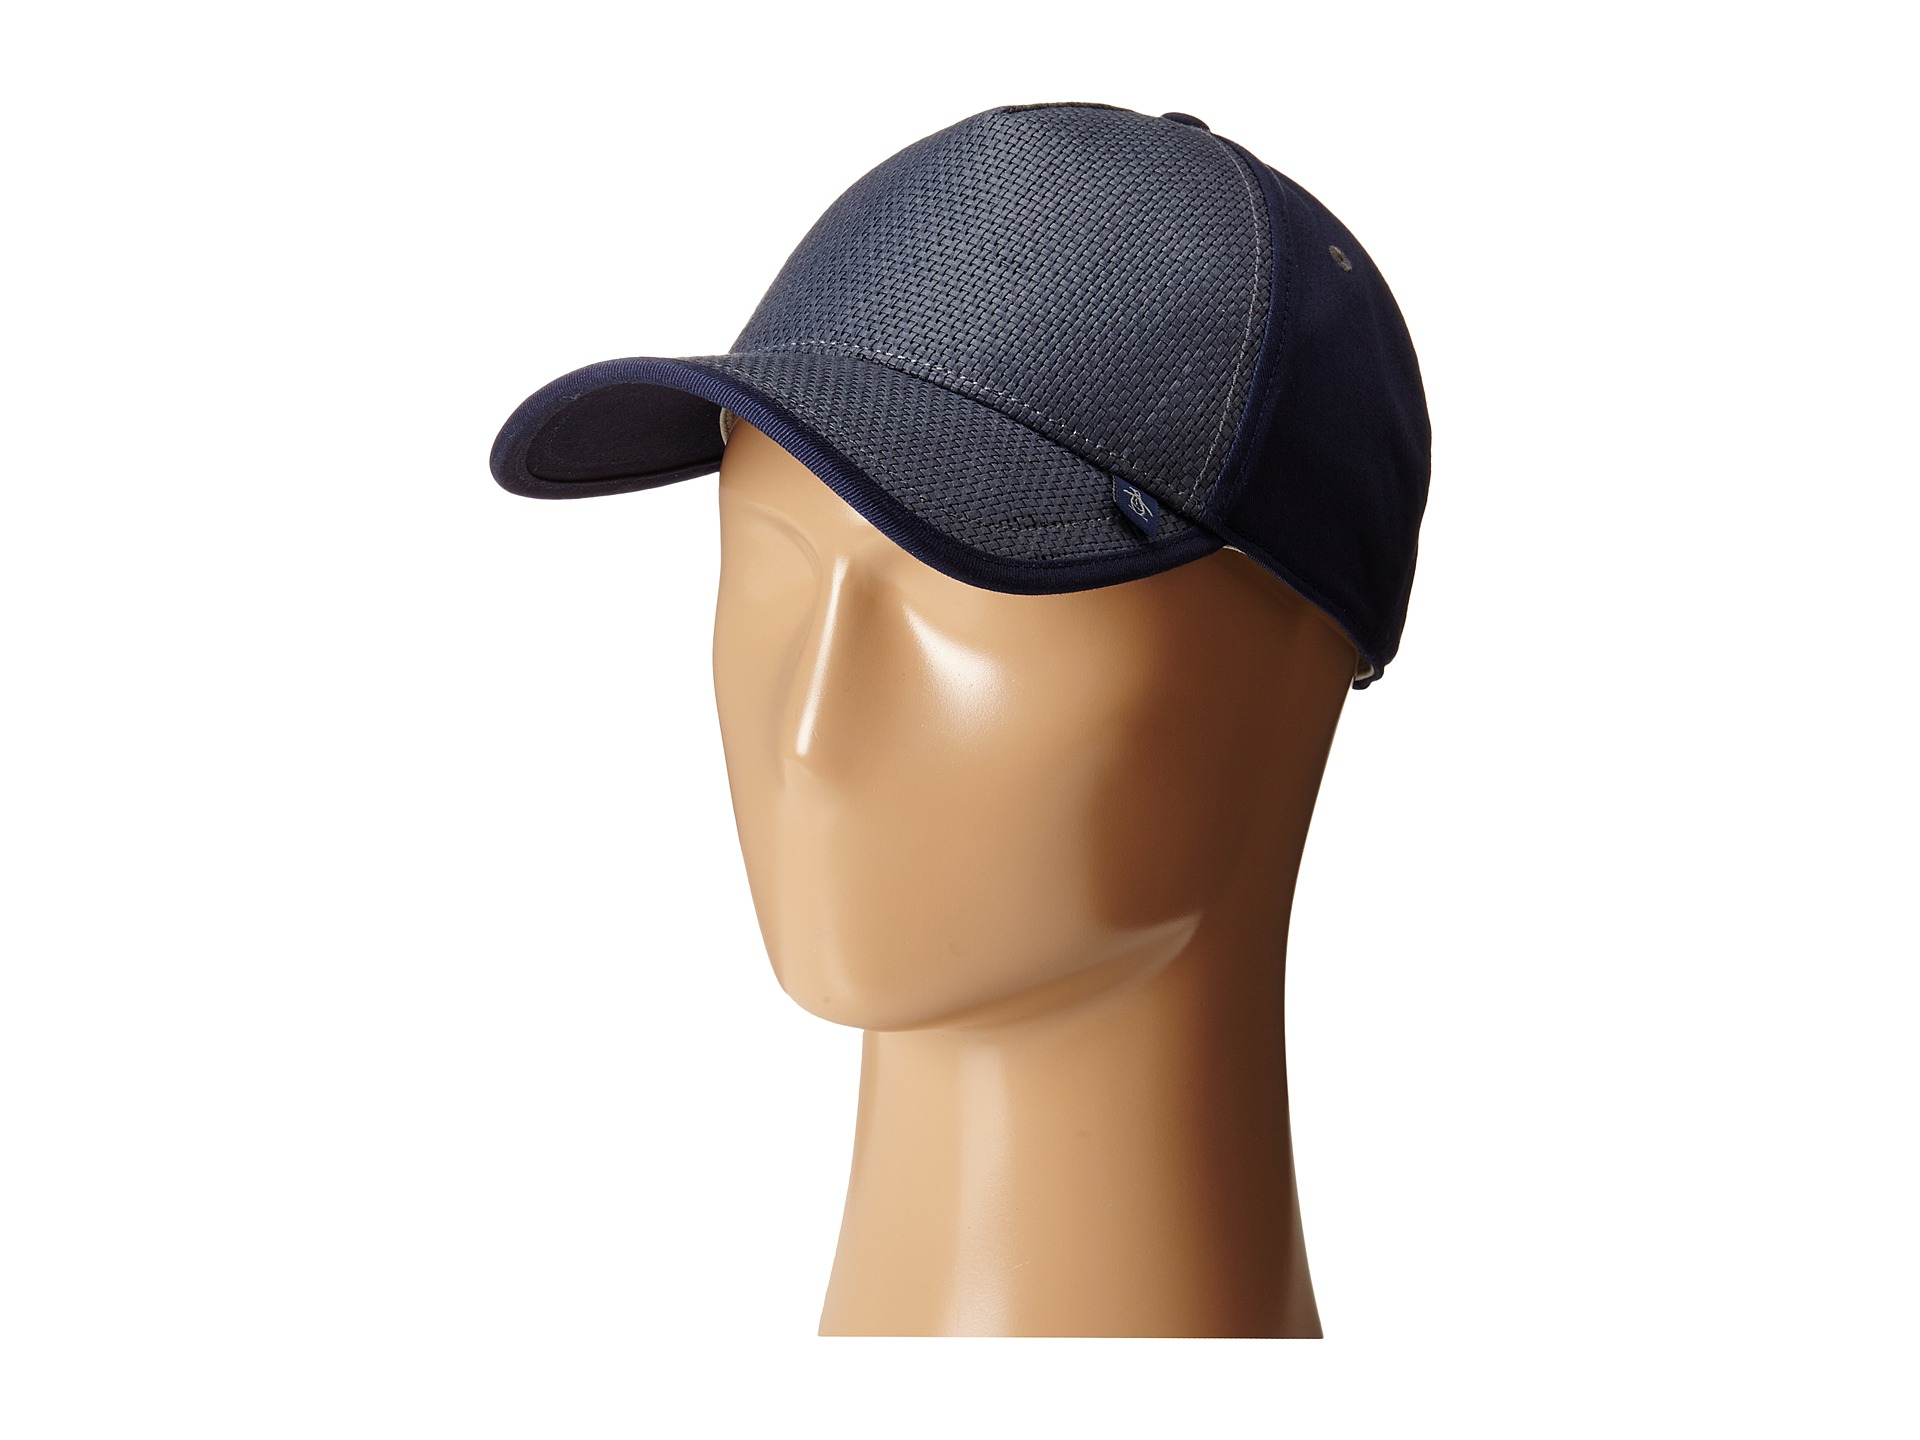 Lyst - Original Penguin Jaffe Straw Ball Cap in Blue for Men 96a5567bbc08